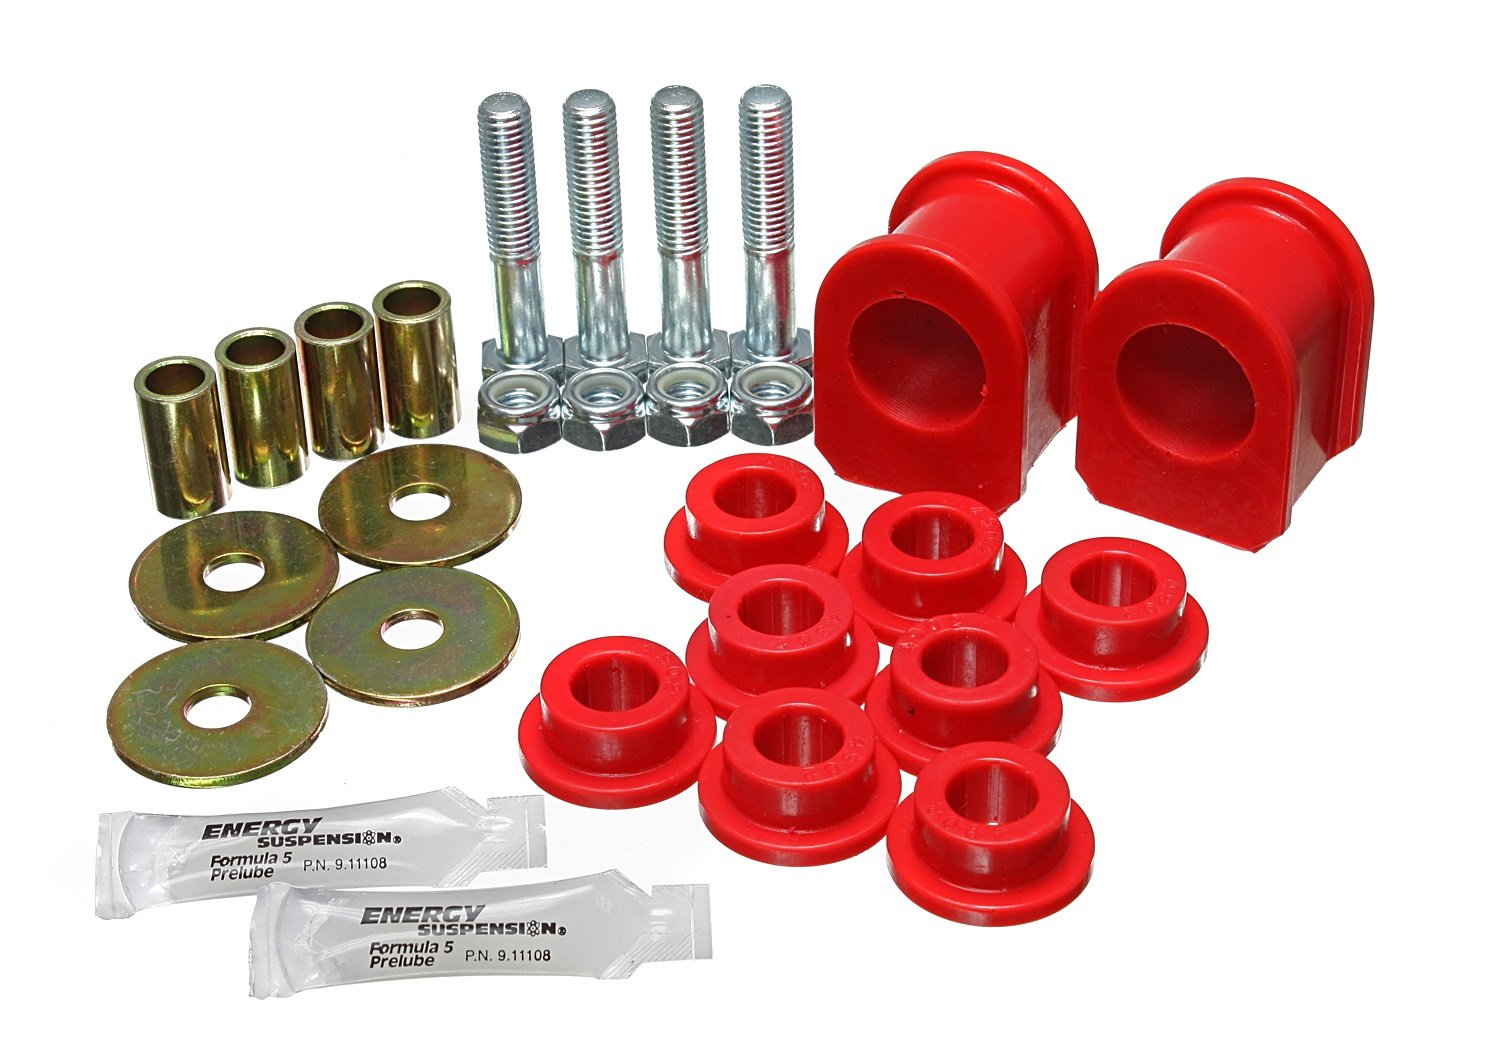 Energy Suspension 4.5192R Front 1 1/4'' SWAY BAR BUSHING SET by Energy Suspension